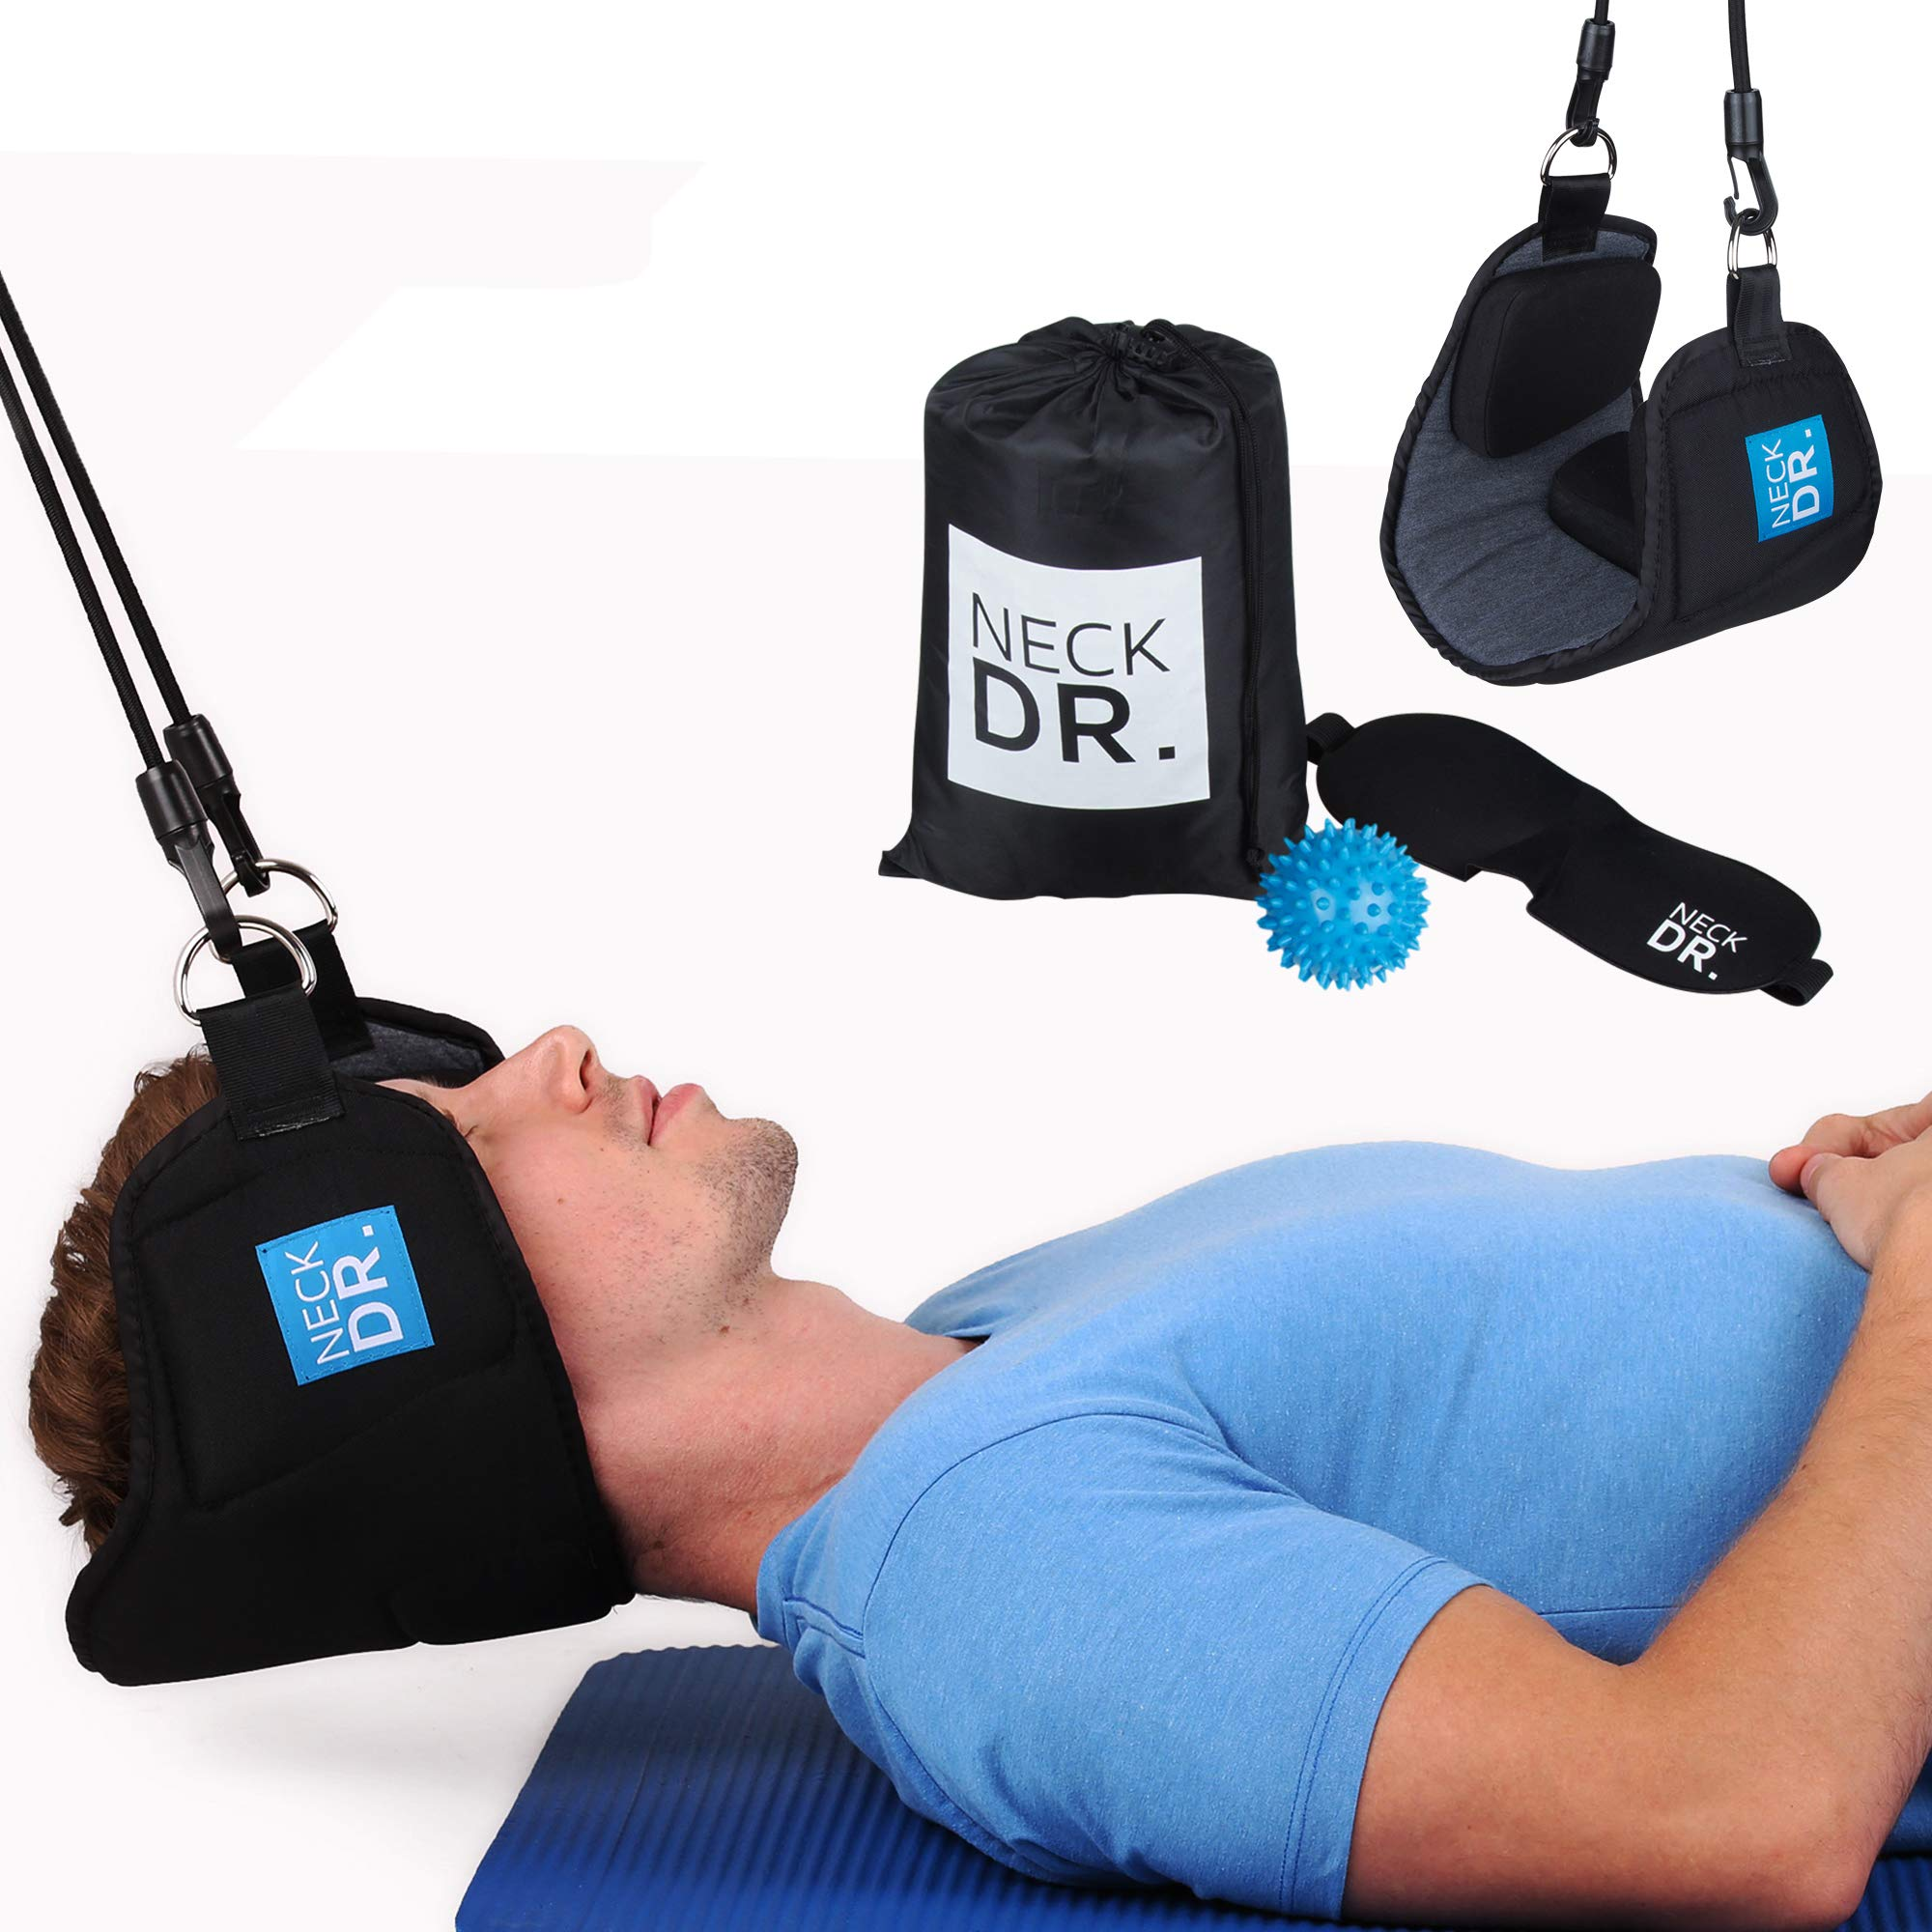 NECK DR. Premium Neck Hammock/Portable Traction Device – Neck Comfort, Cervical Compression Relief, Relaxation Device – Bonus Items: Neck Dr. Brand Eye Mask and Spiky Massage Ball by Neck Dr. (Image #1)